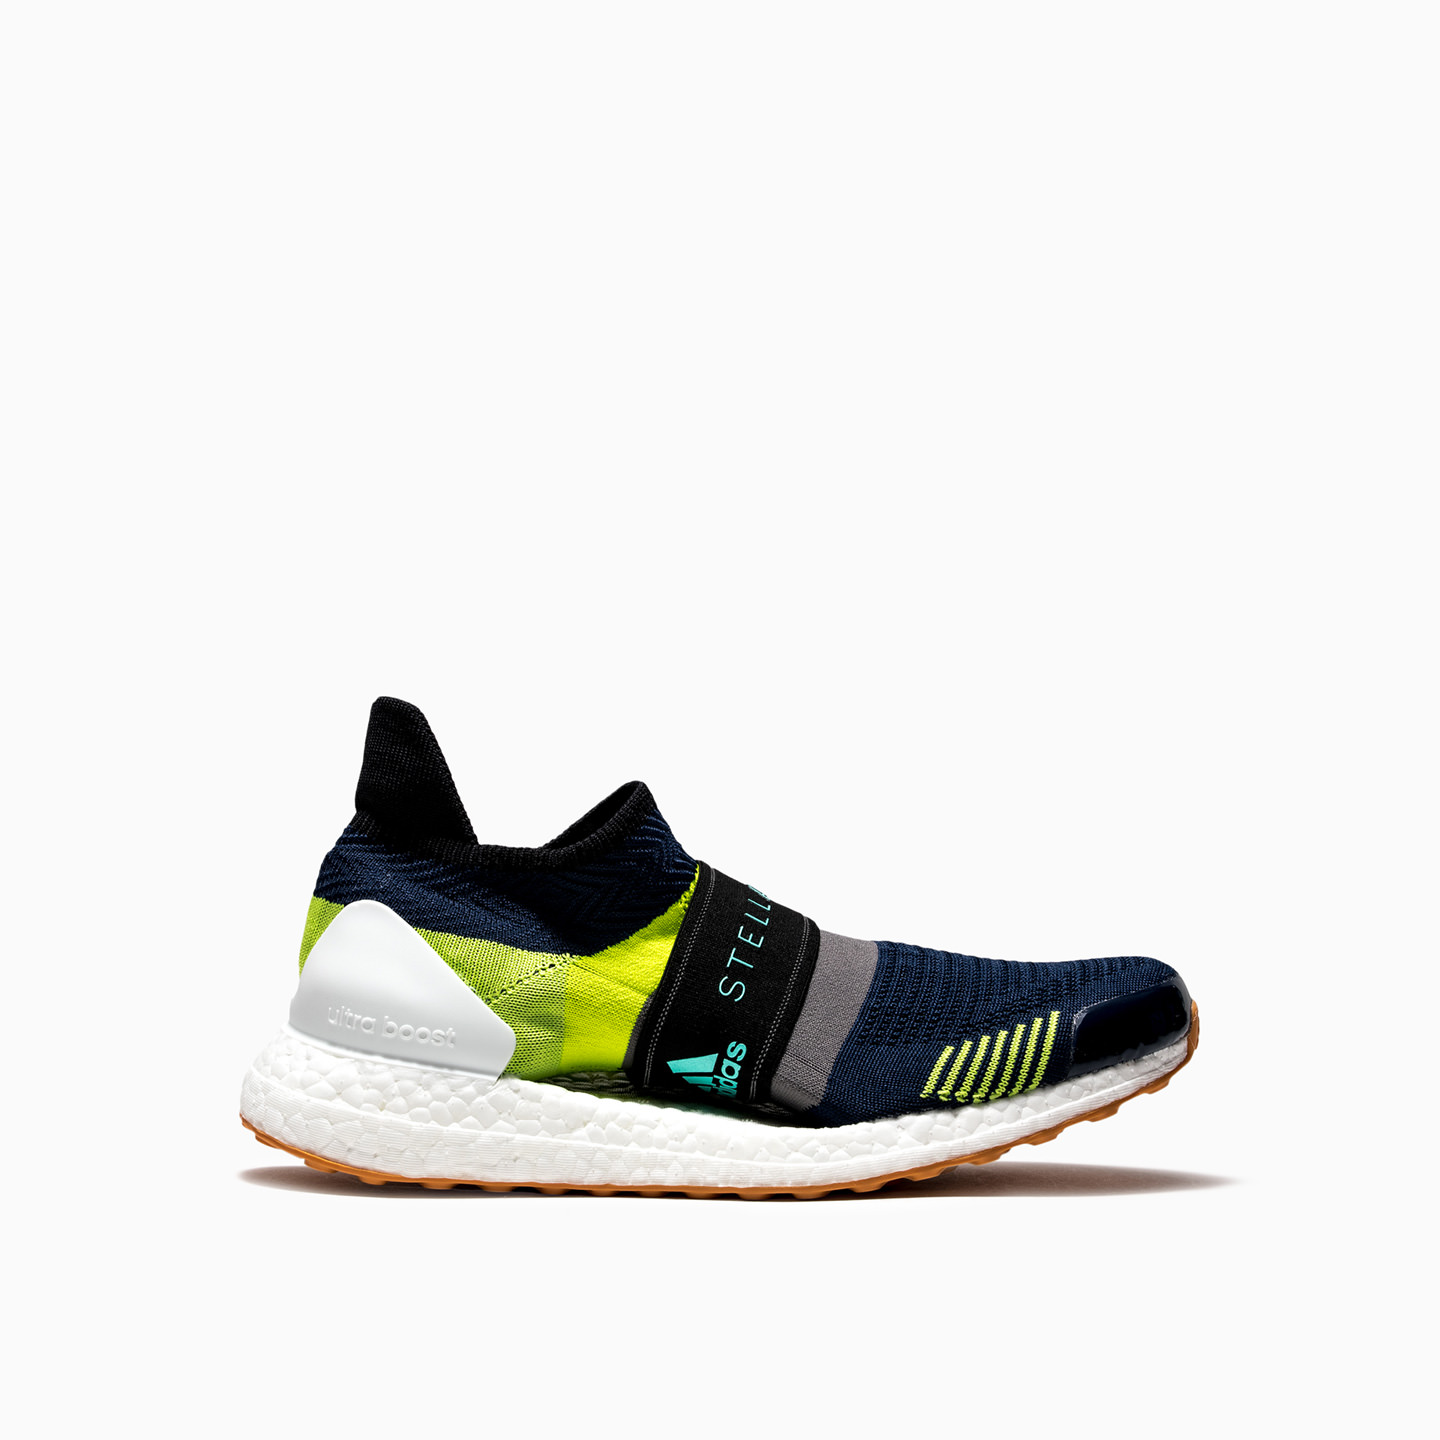 adidas nmd human race red, adidas by Stella McCartney